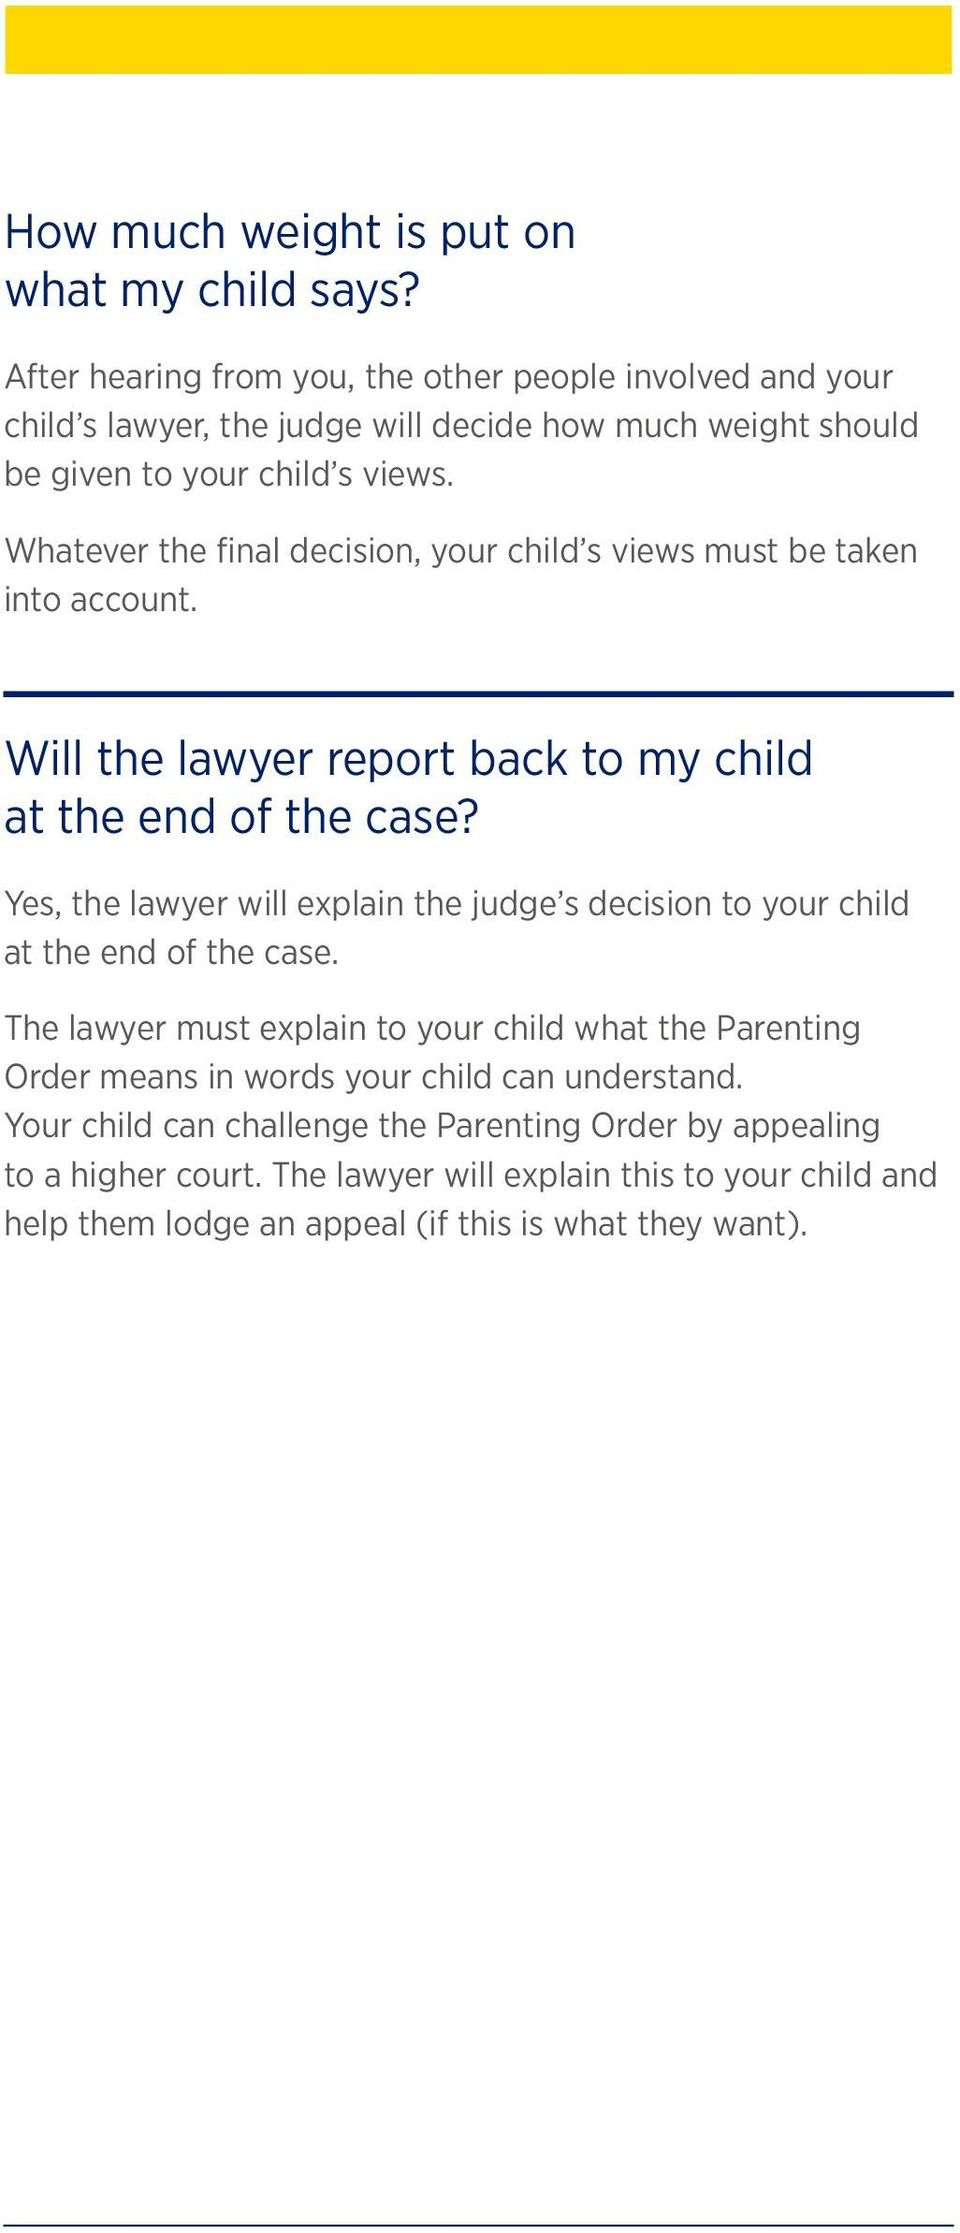 Whatever the final decision, your child s views must be taken into account. Will the lawyer report back to my child at the end of the case?